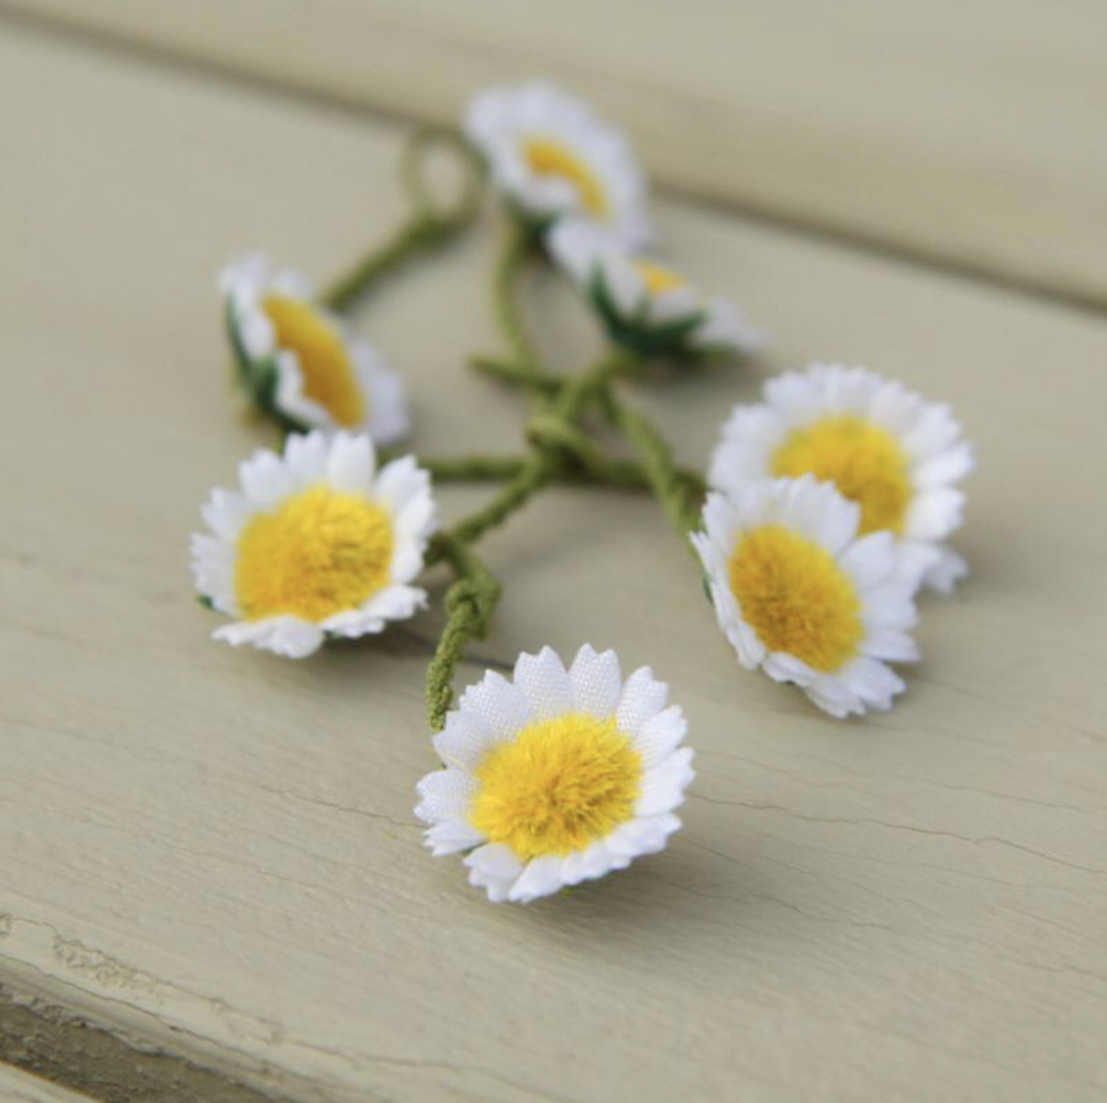 DAISY CHAIN SQUARE GIFT BOX - 40 WHITE SILK DAISIES By spotted Cow creations